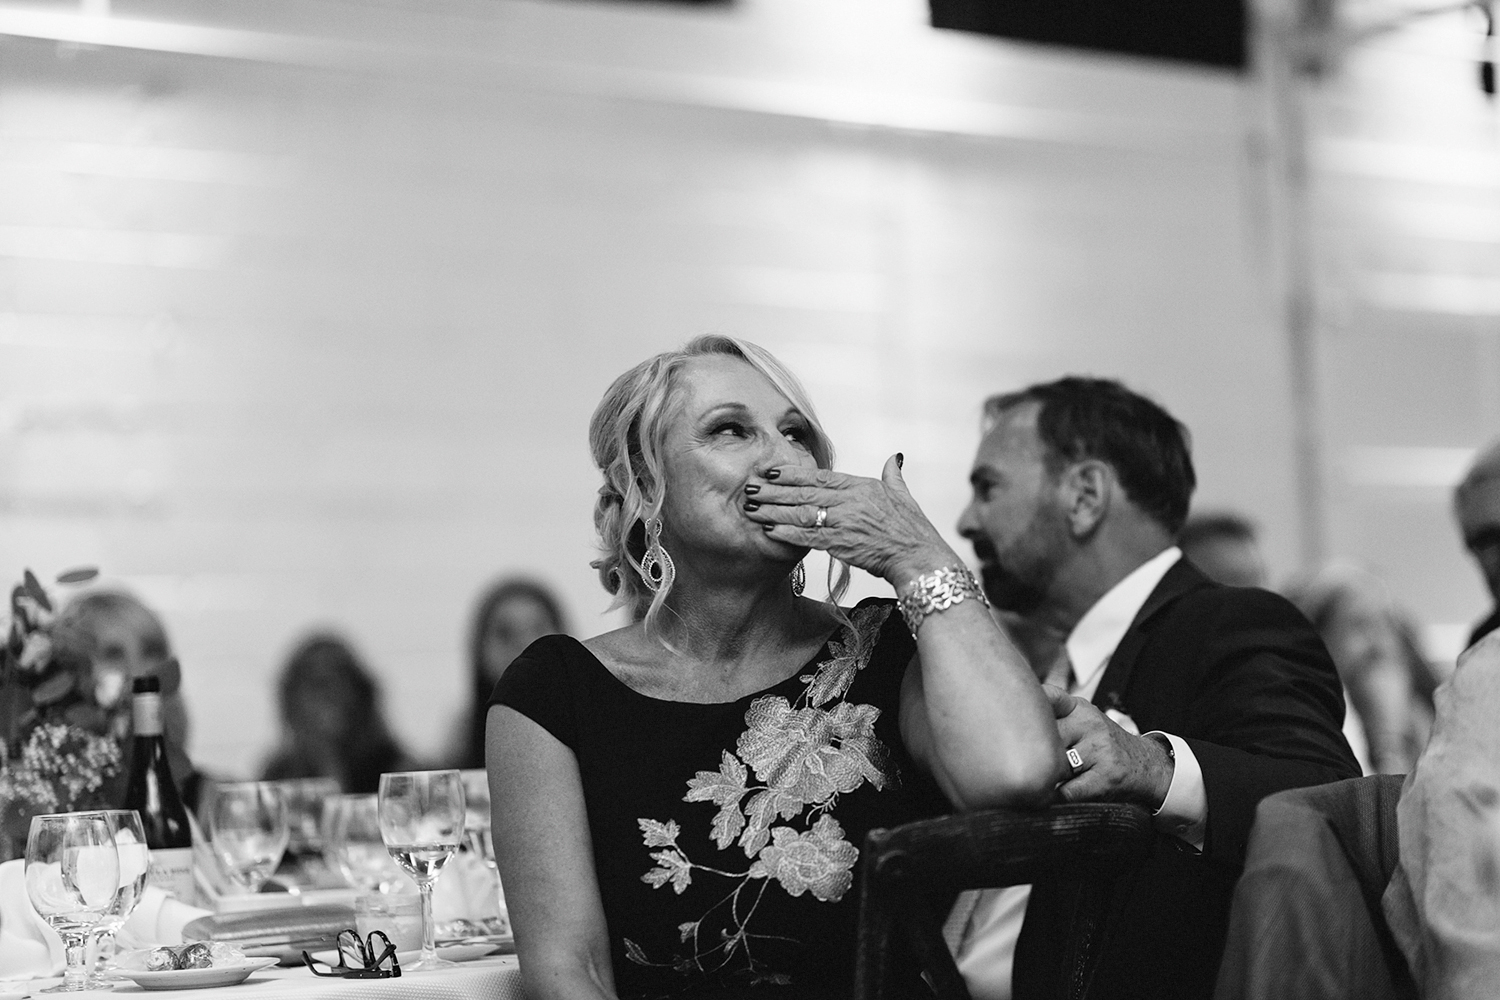 Best-Wedding-photographers-Toronto-NAtural-Candid-wedding-photography-Airship37-Reception-Venue-mother-son-dance-emotional-blowing-kiss.jpg